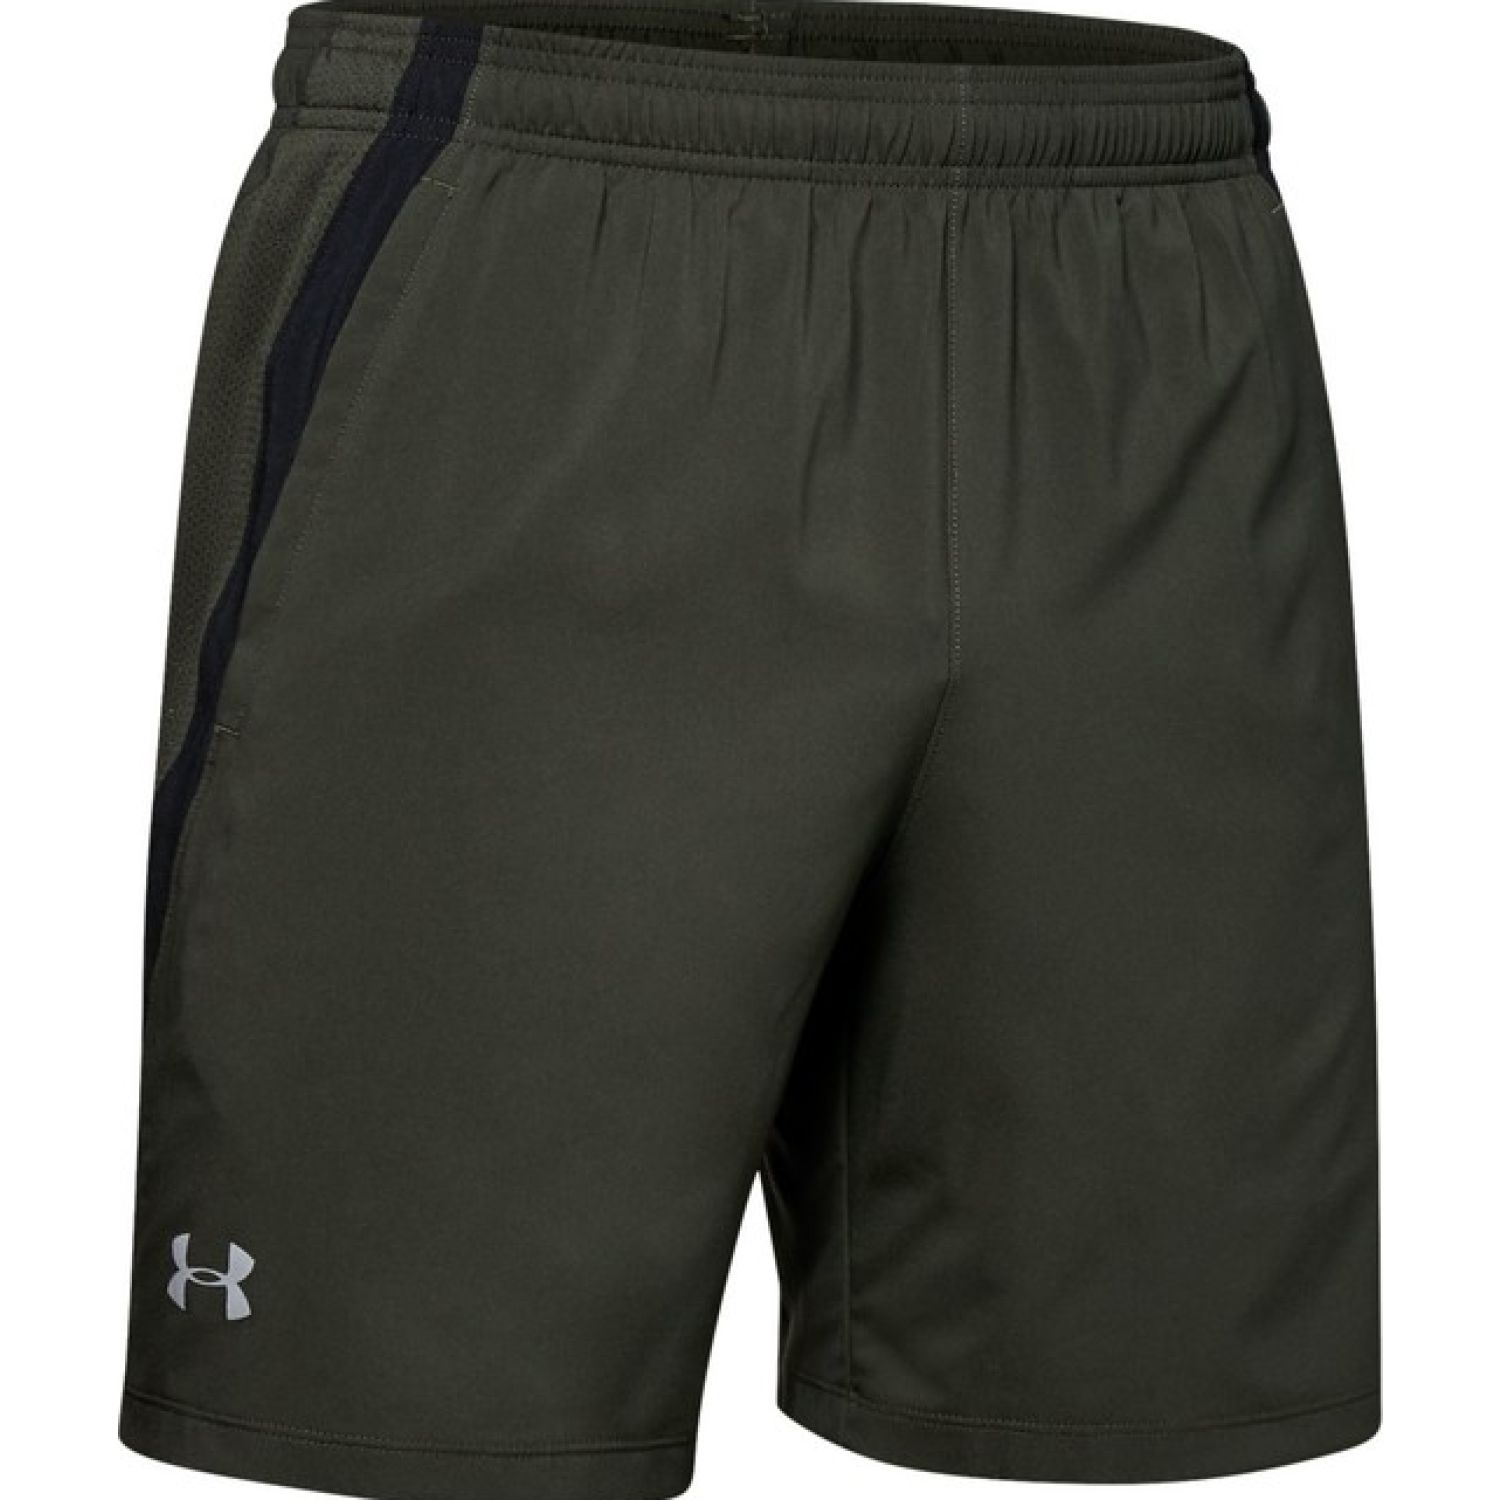 Under Armour ua launch sw 7'' short Verde Shorts Deportivos